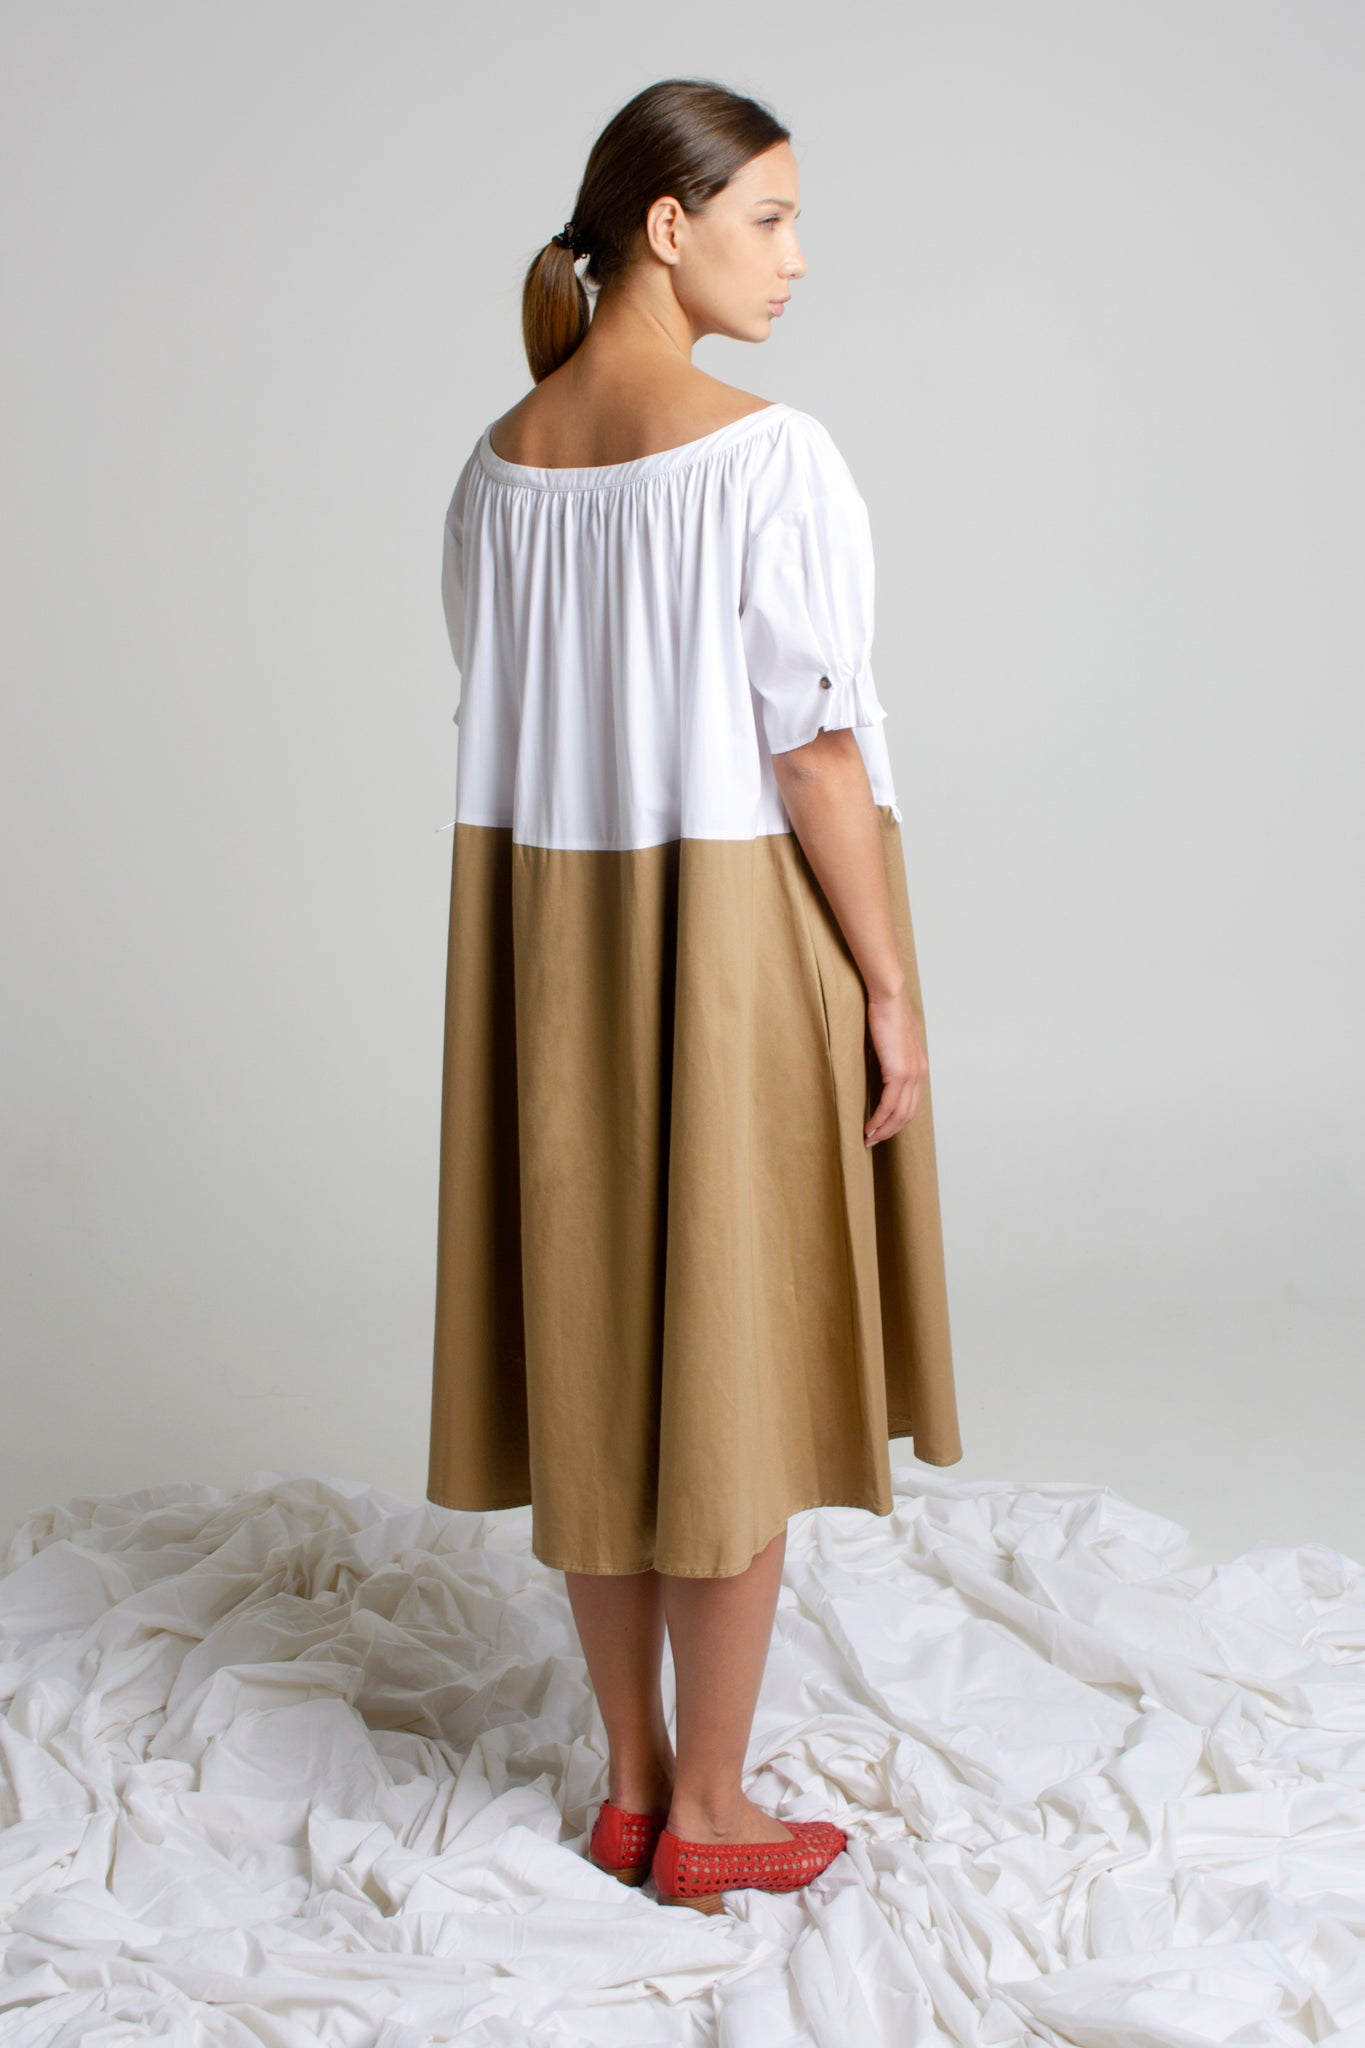 Unfold Women's Clothing